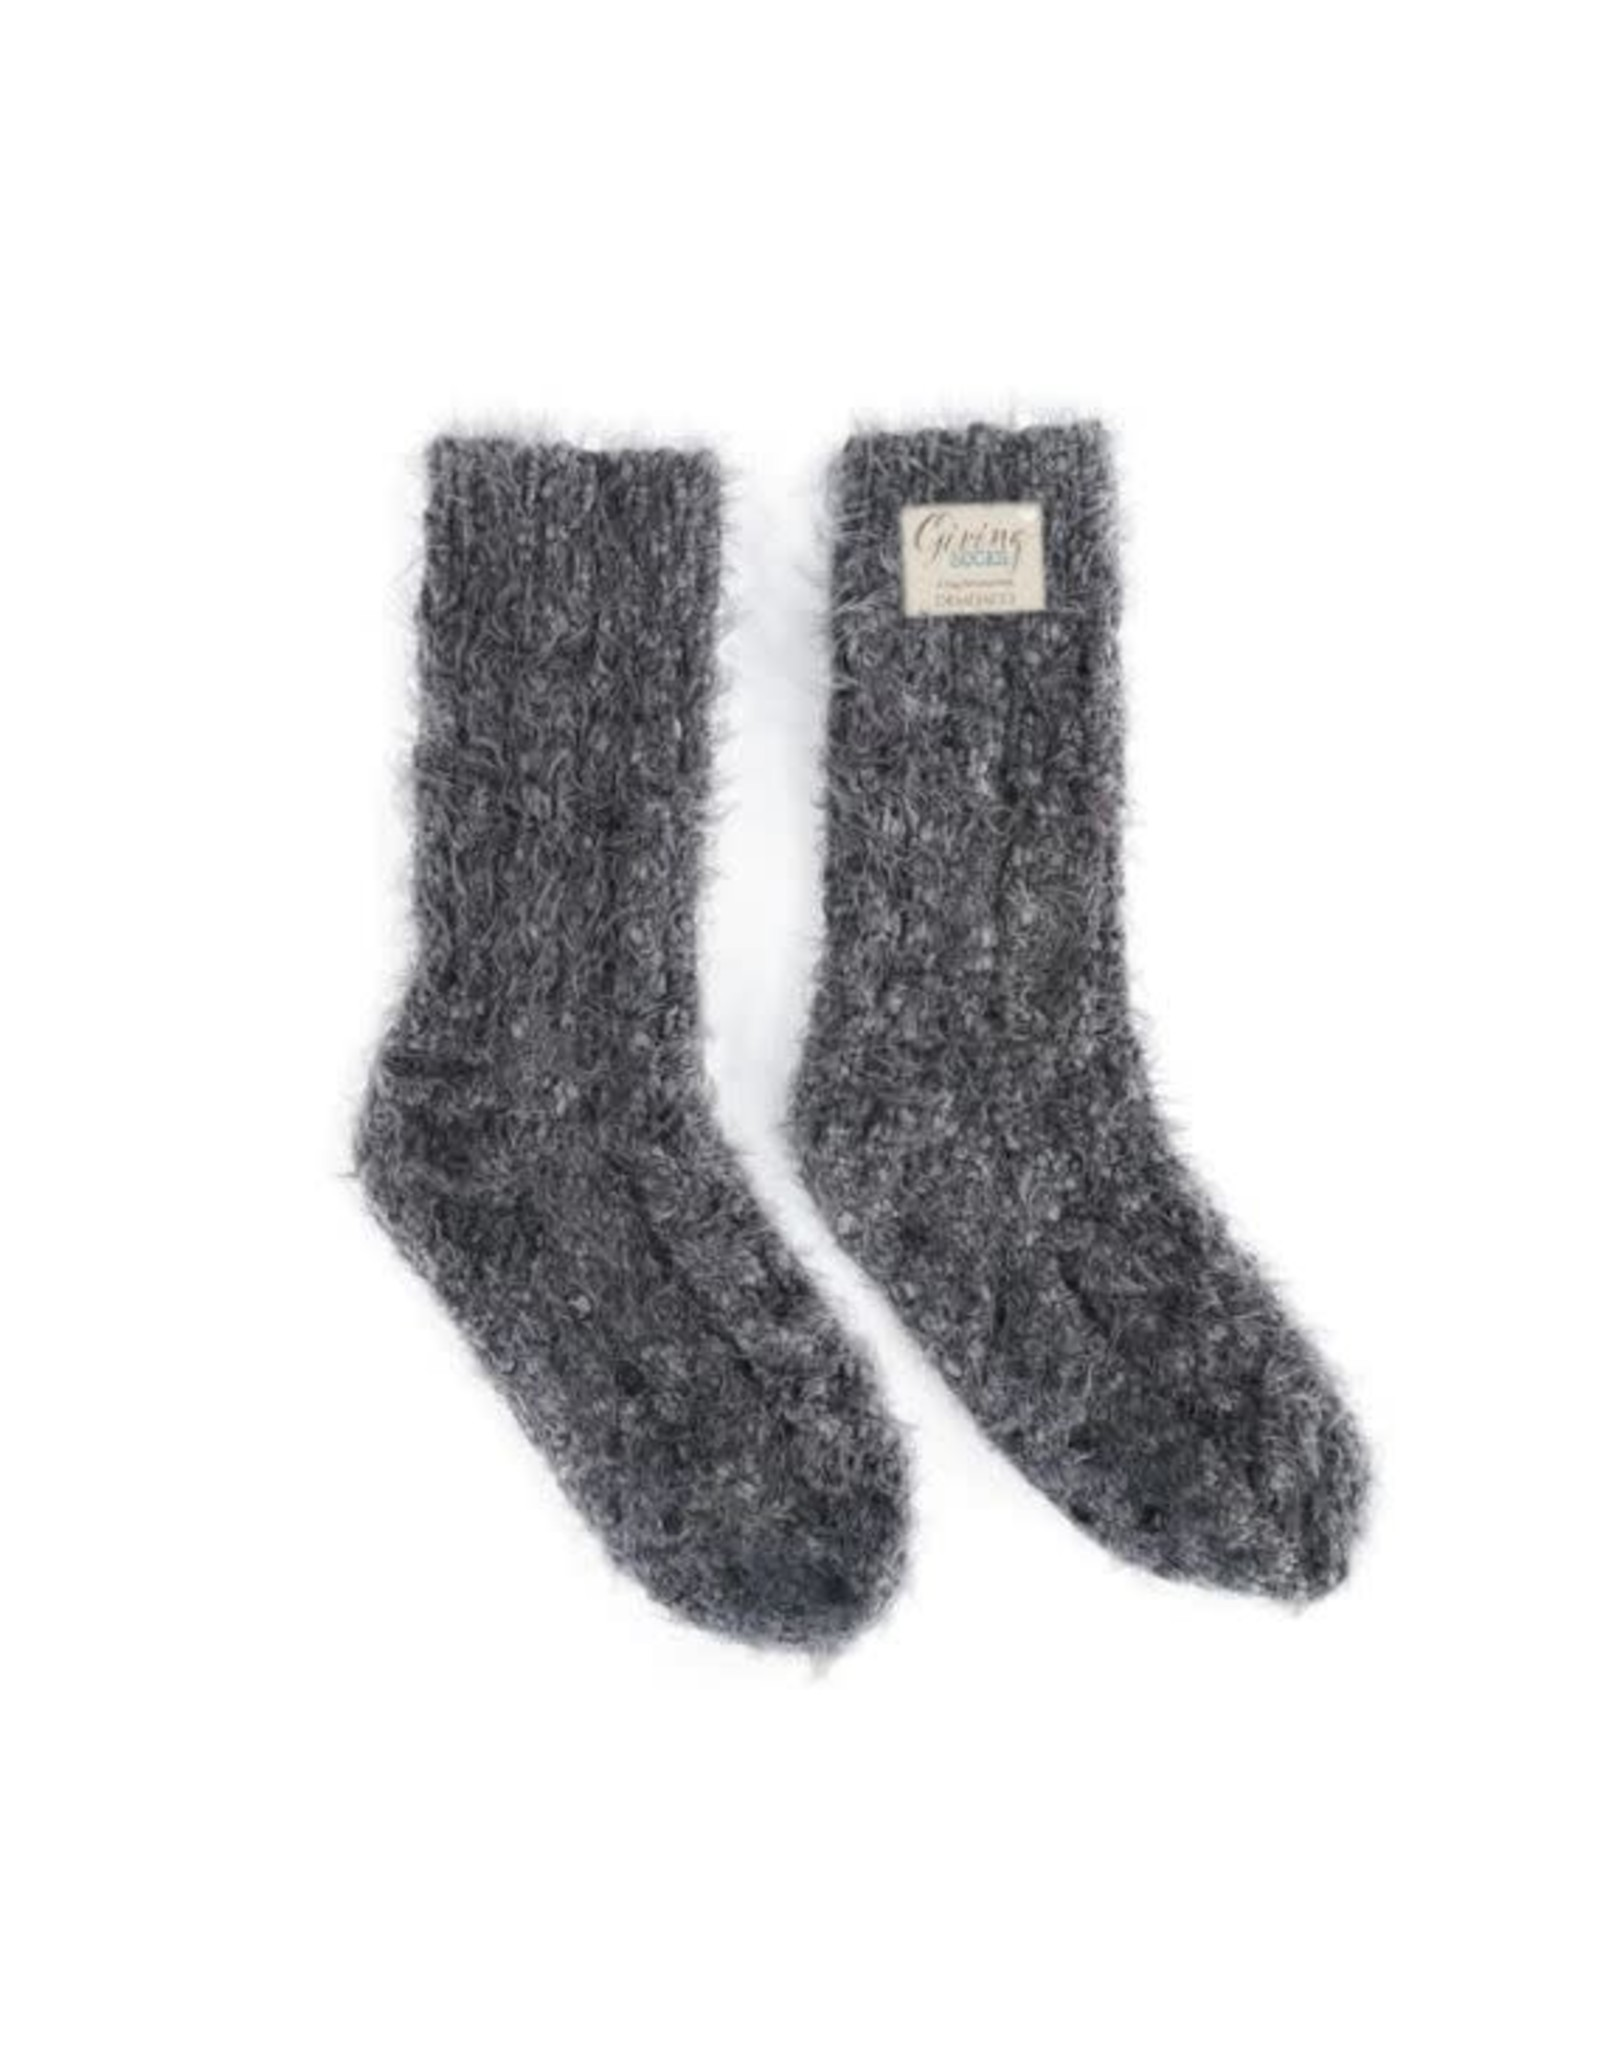 Demdaco CHARCOAL GIVING SOCKS